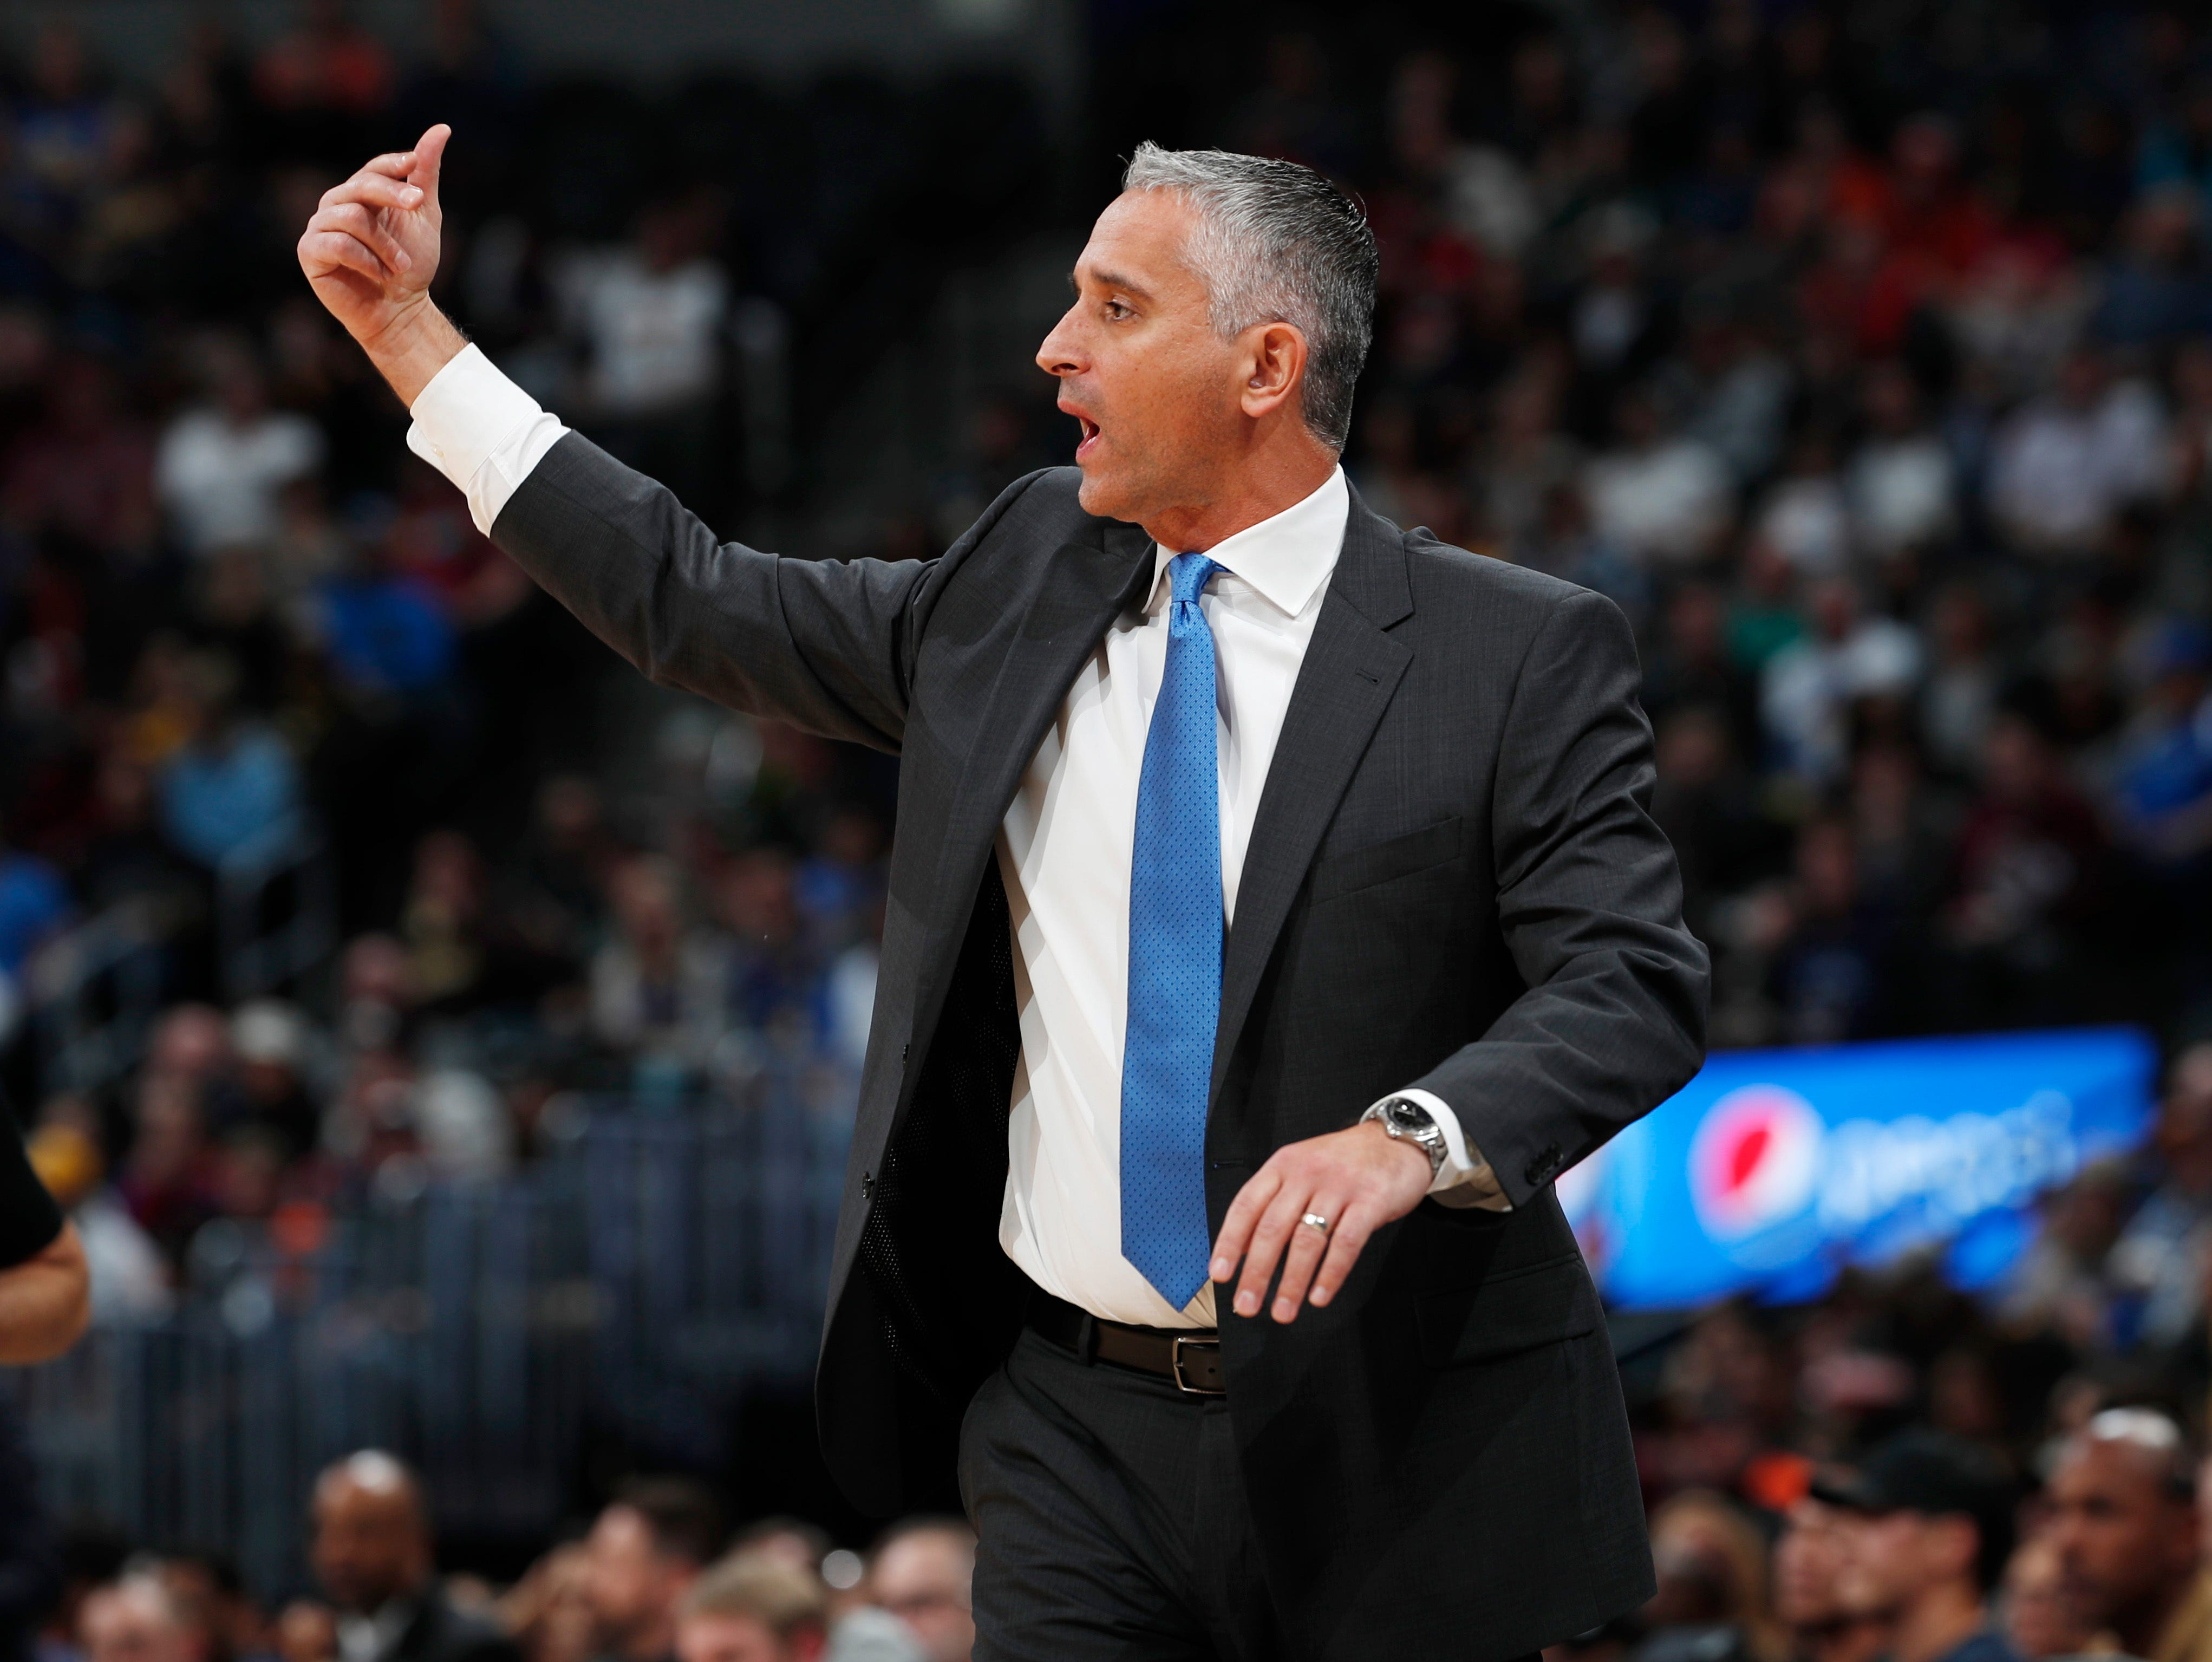 Phoenix Suns head coach Igor Kokoskov directs his team against the Denver Nuggets in the first half of an NBA basketball game Friday, Jan. 25, 2019, in Denver. (AP Photo/David Zalubowski)